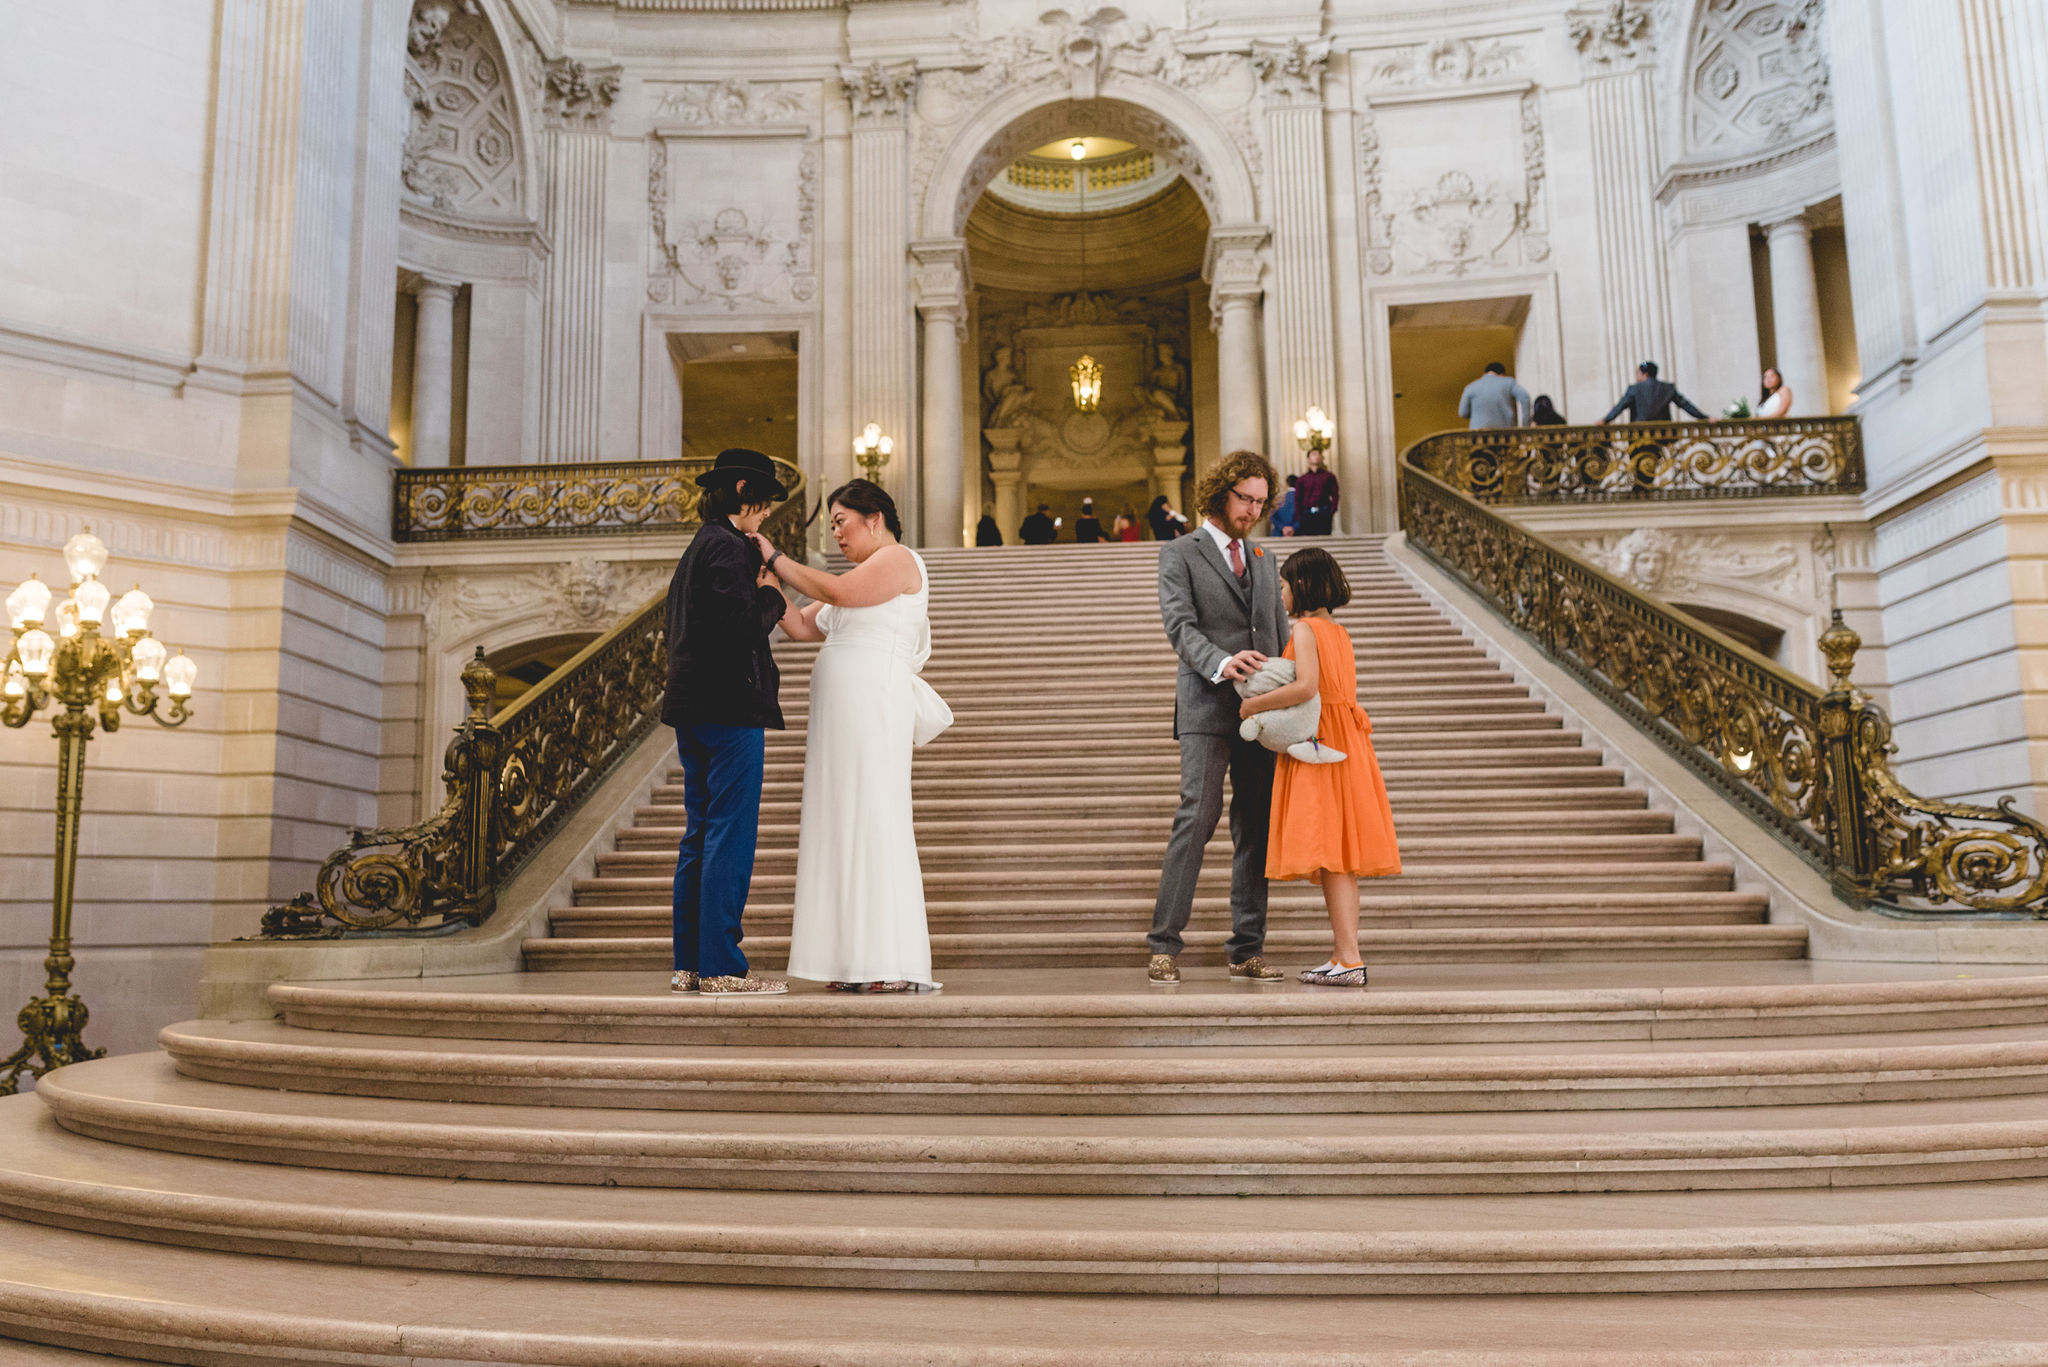 wtfjk_wedding-cityhall-13.jpg